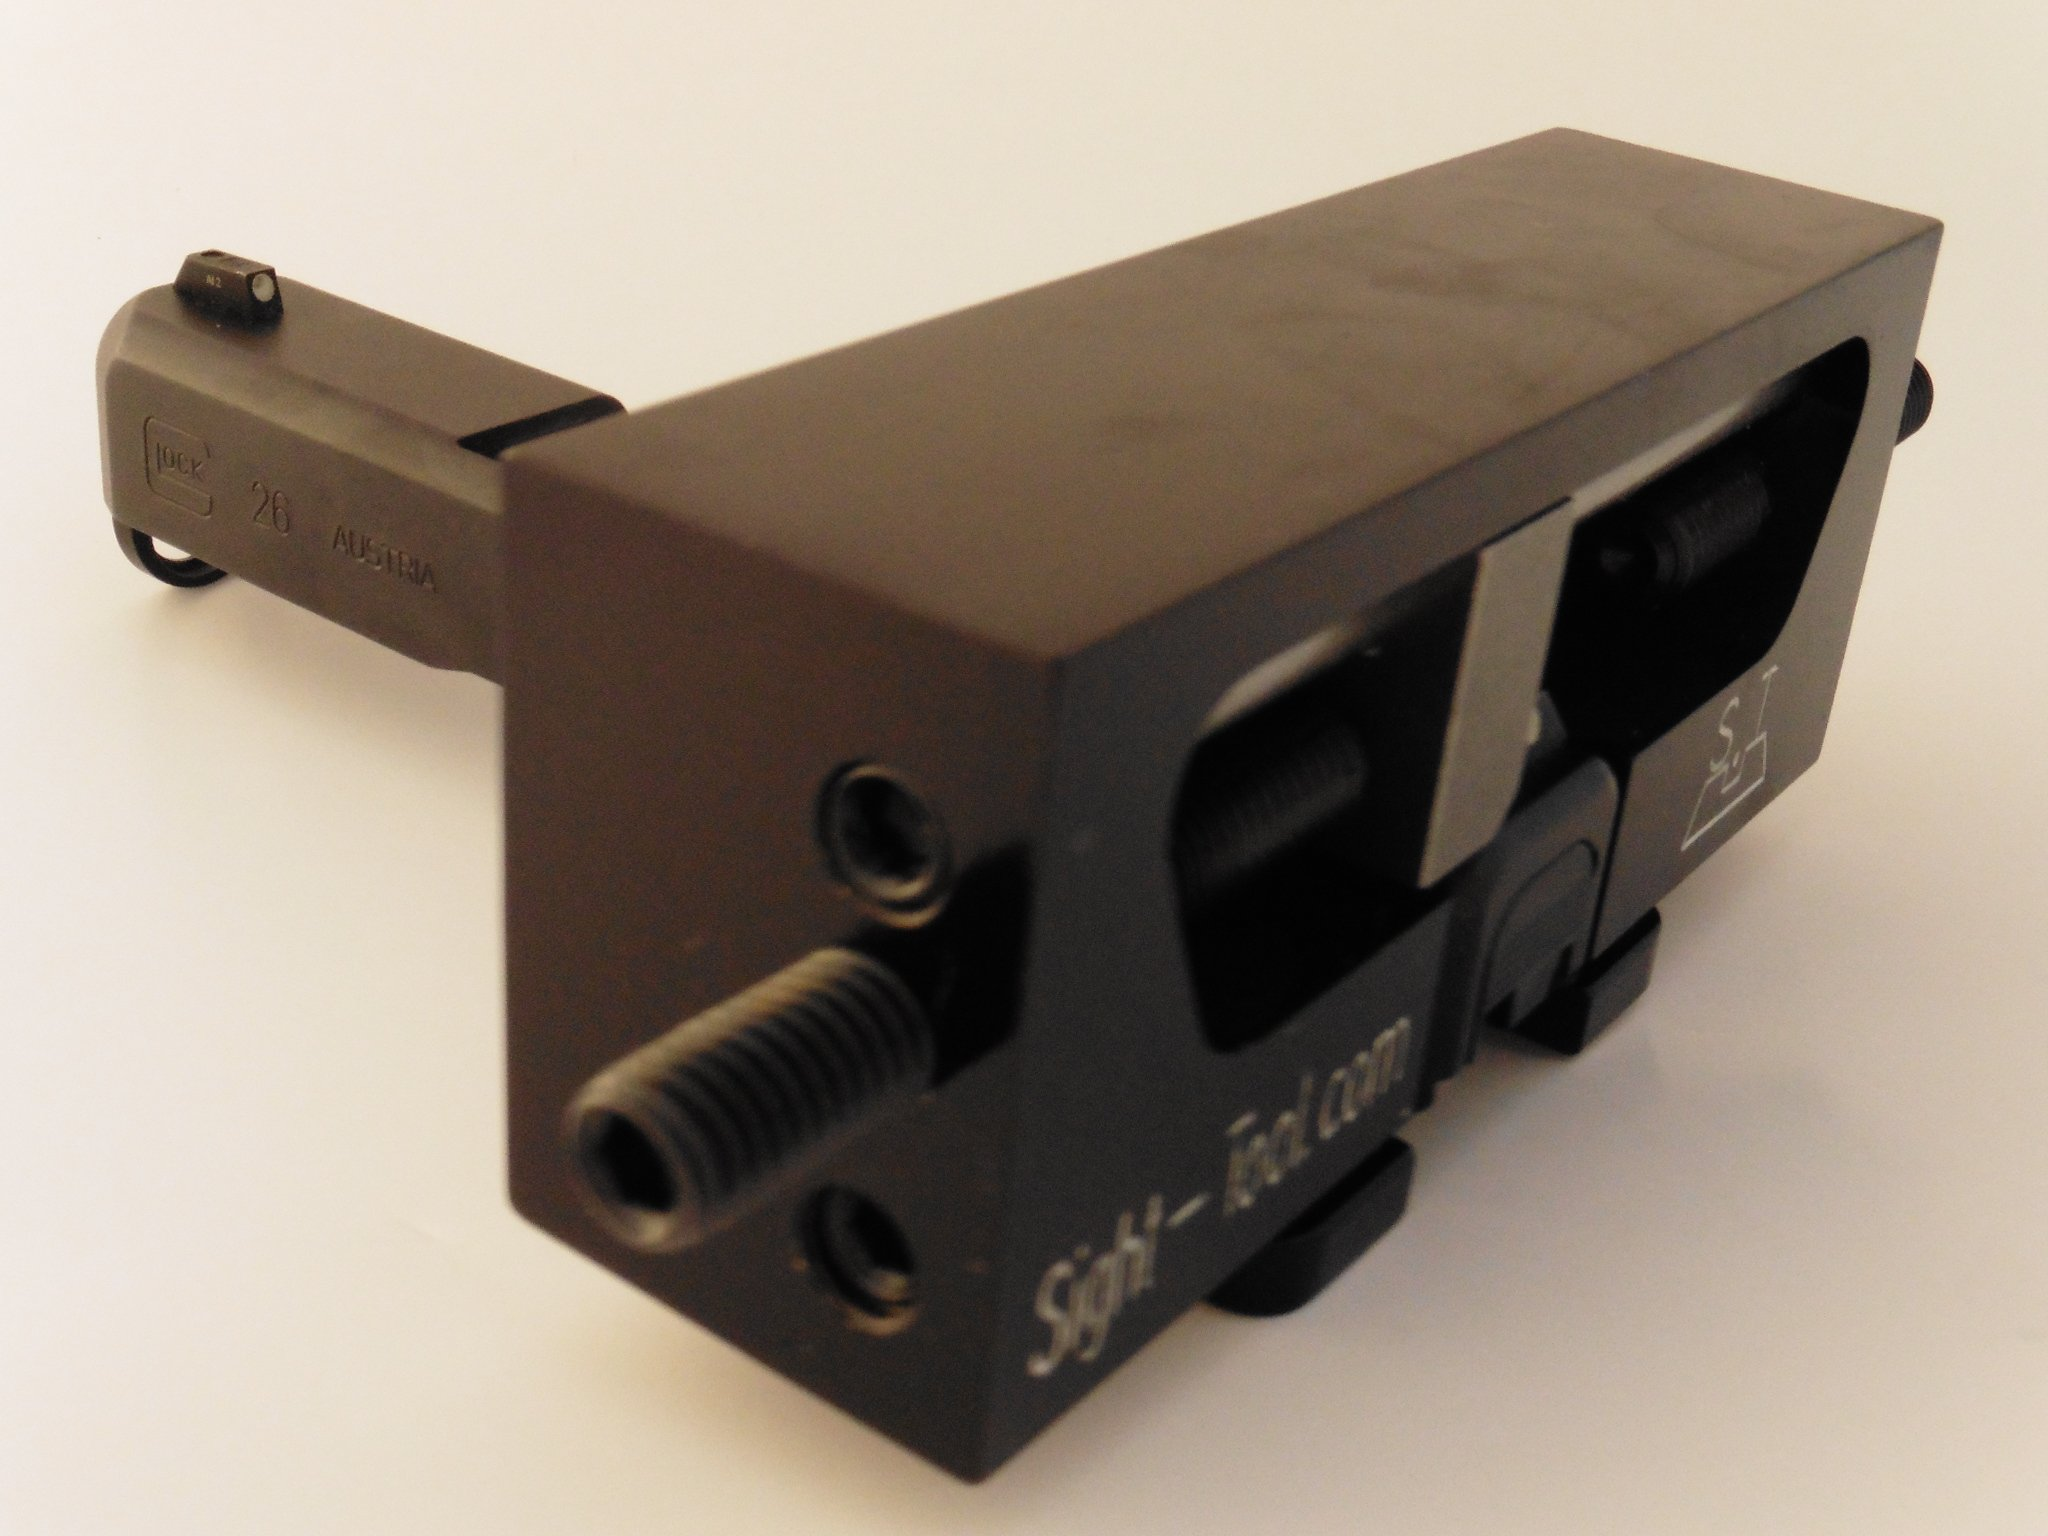 Universal Handgun Sight Pusher Tool for 1911 Sig springfield and others* Best tool on the market for front or rear sights* MADE IN USA by sight-tool.com (Image #3)